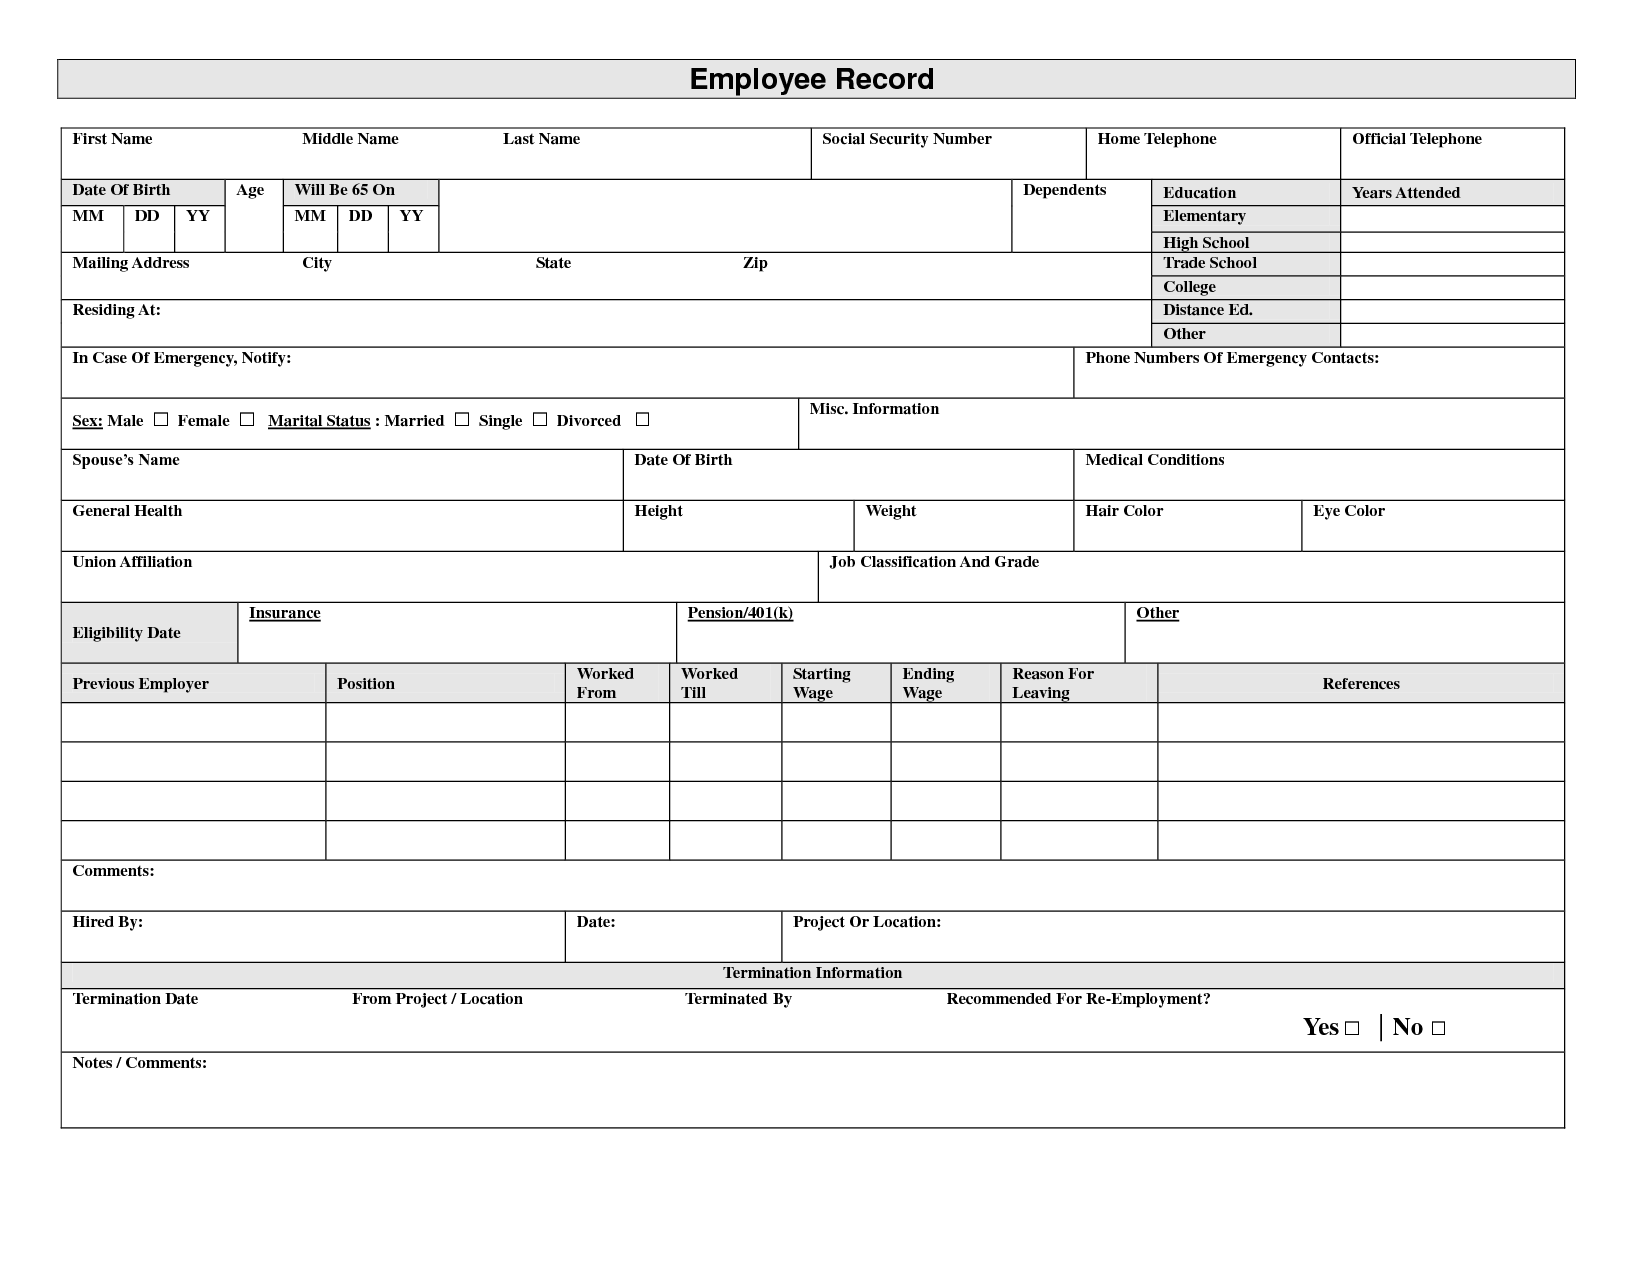 Sometimes Medical Your My A Records Free Someone Records A. Employment ...  Employee Information Form Sample